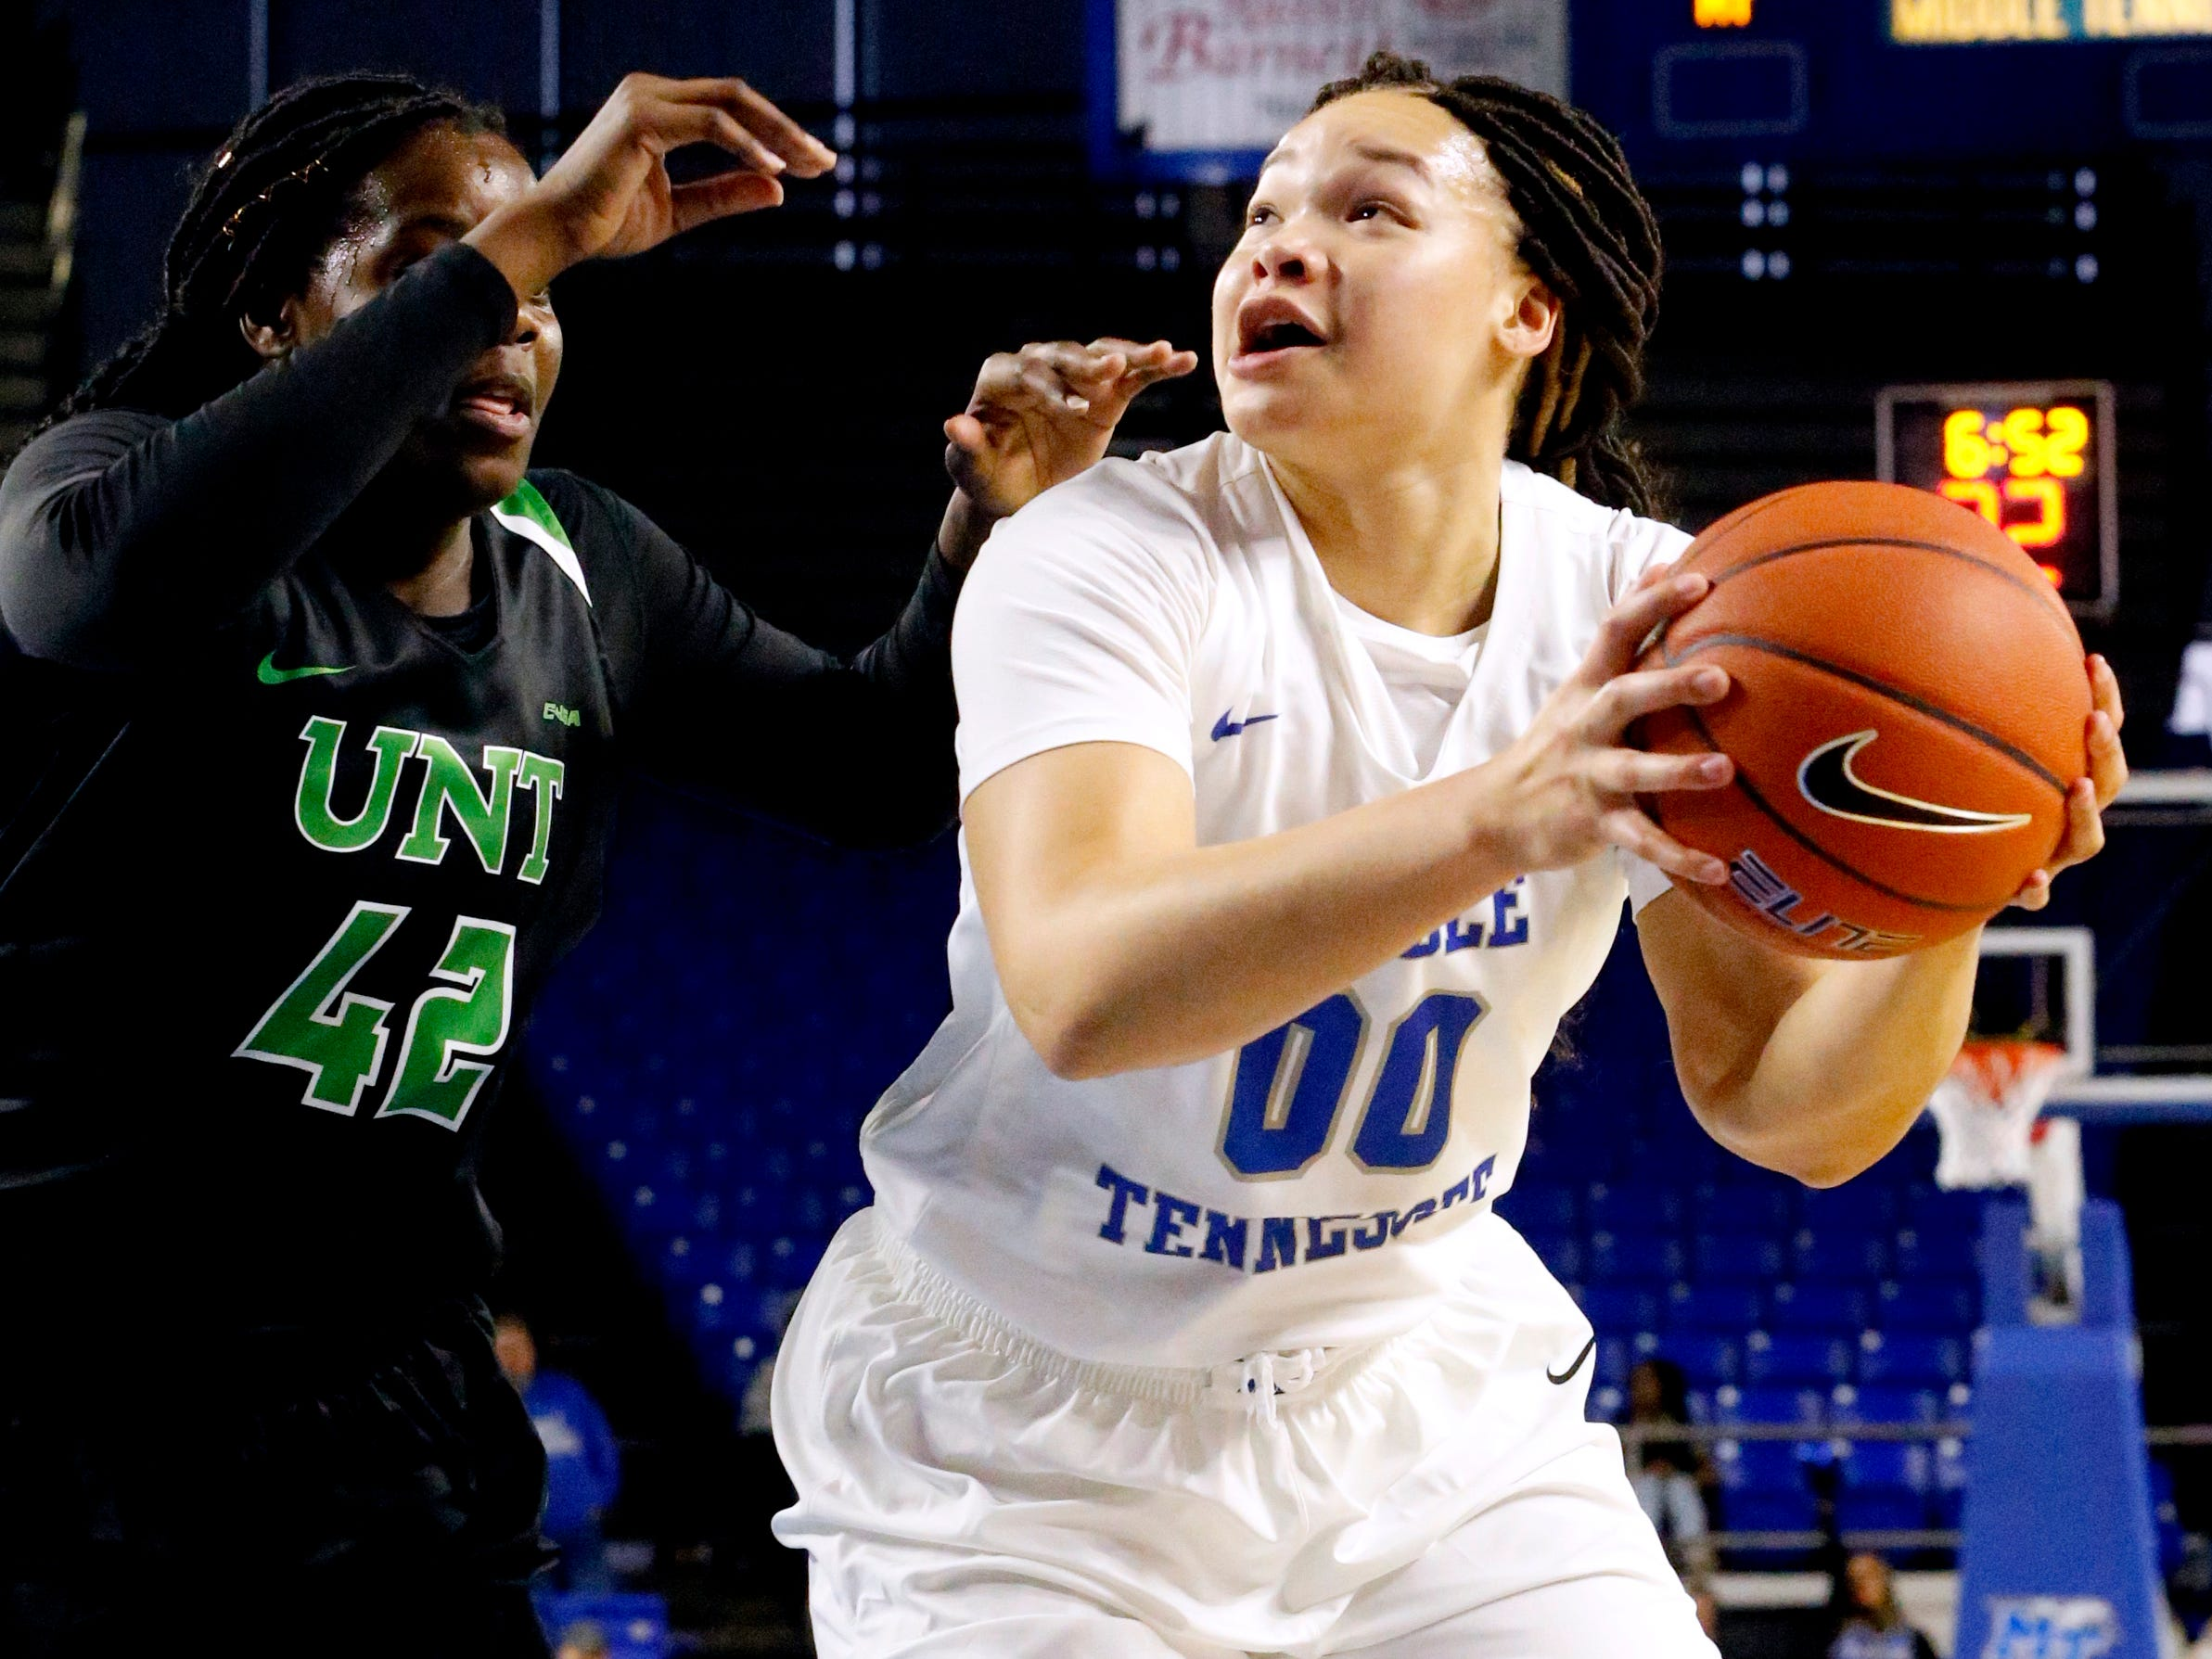 MTSU's forward Alex Johnson (00) goes looks to go up for a shot as North Texas' forward/center Anisha George (42) guards her on Saturday Jan. 26, 2019.